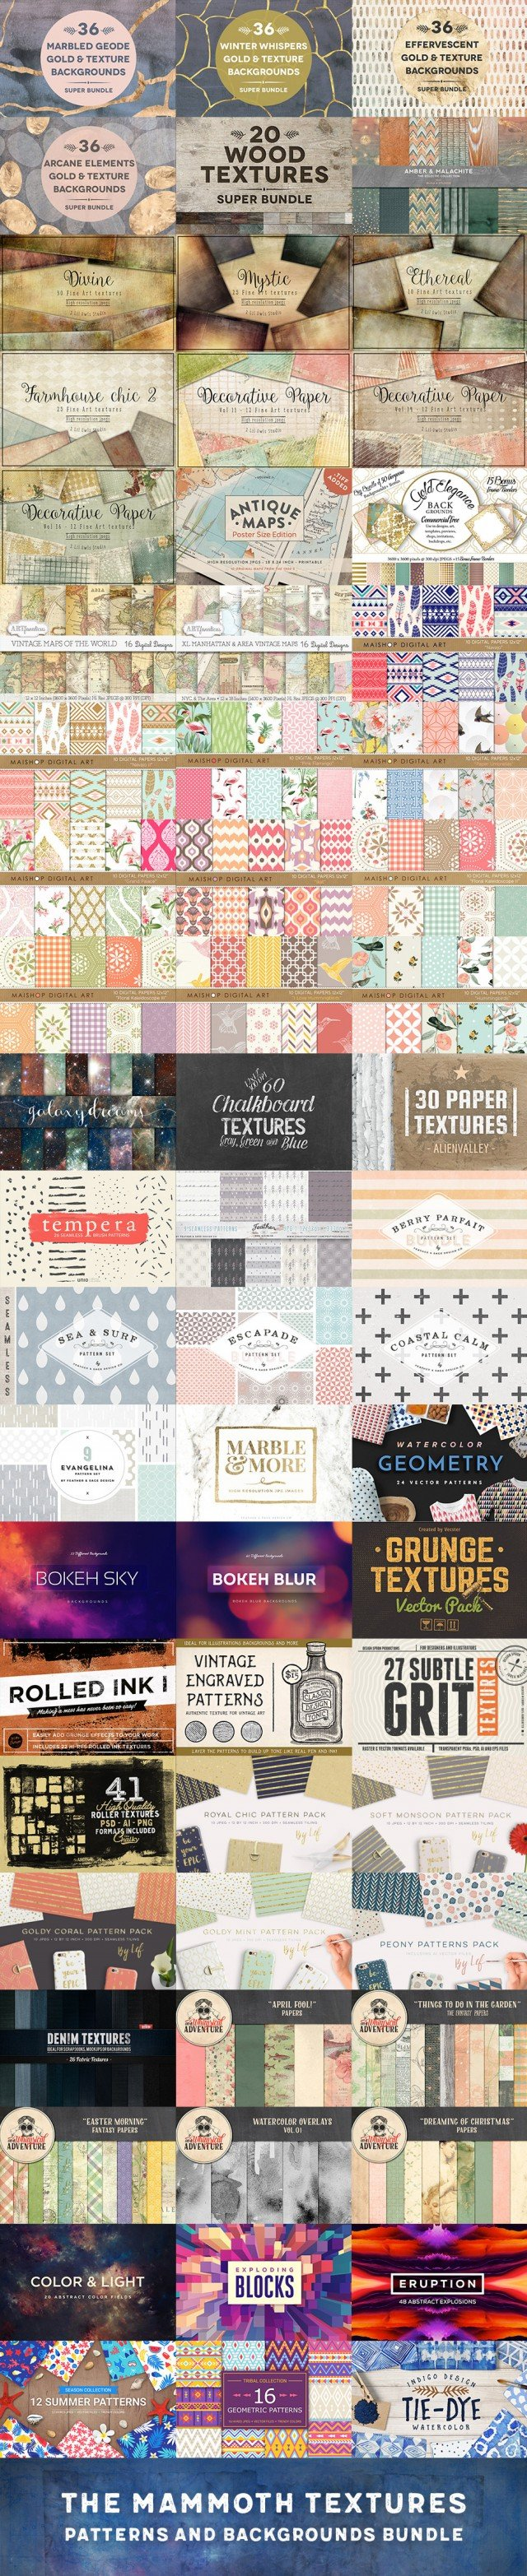 Professional Quality Textures, Patterns & Backgrounds